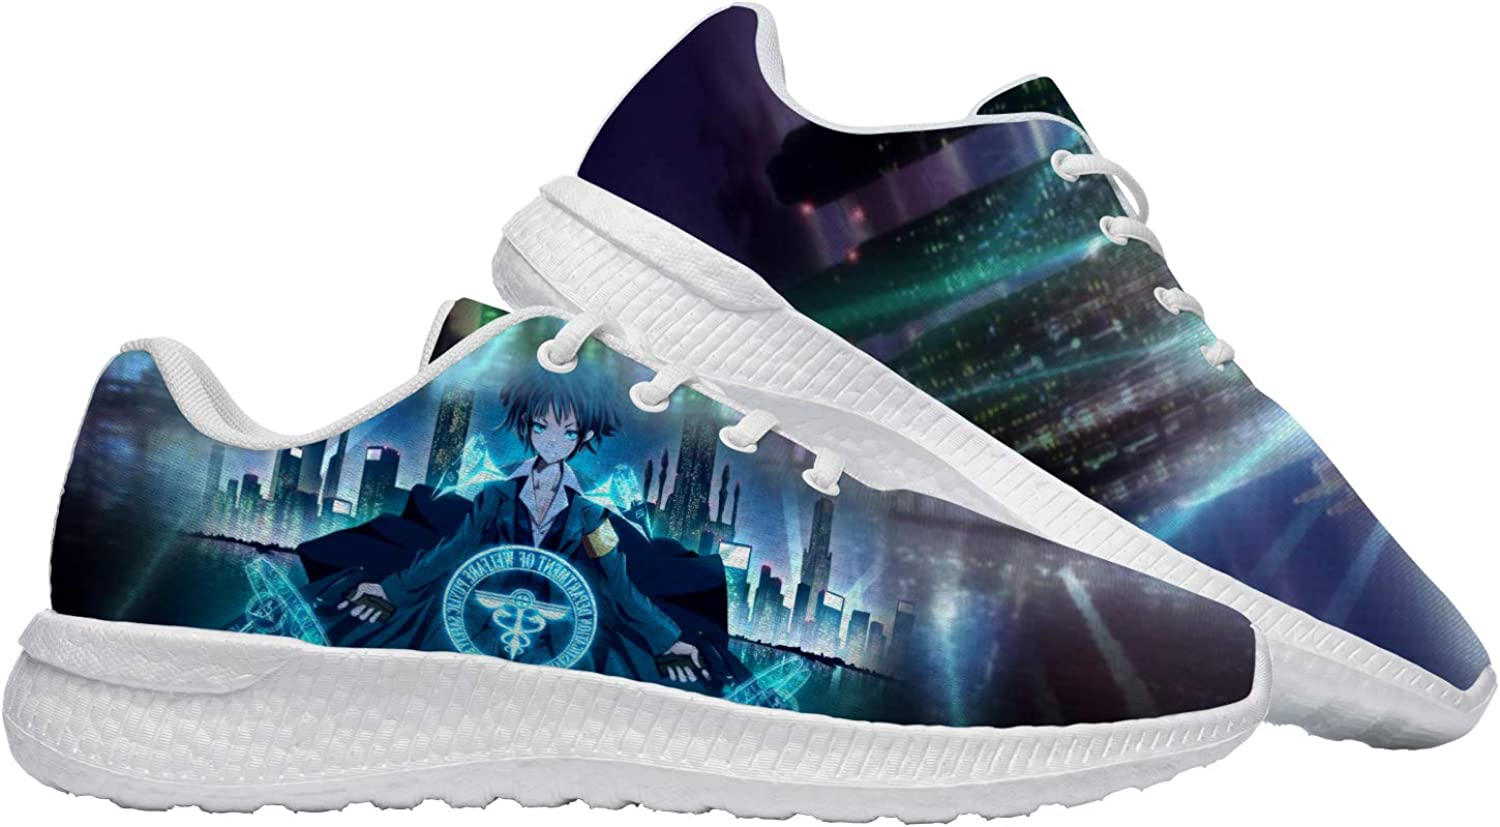 adigow Japanese Anime 2021 Free Shipping New autumn and winter new Shoes for R Women Cartoon Personalited Men